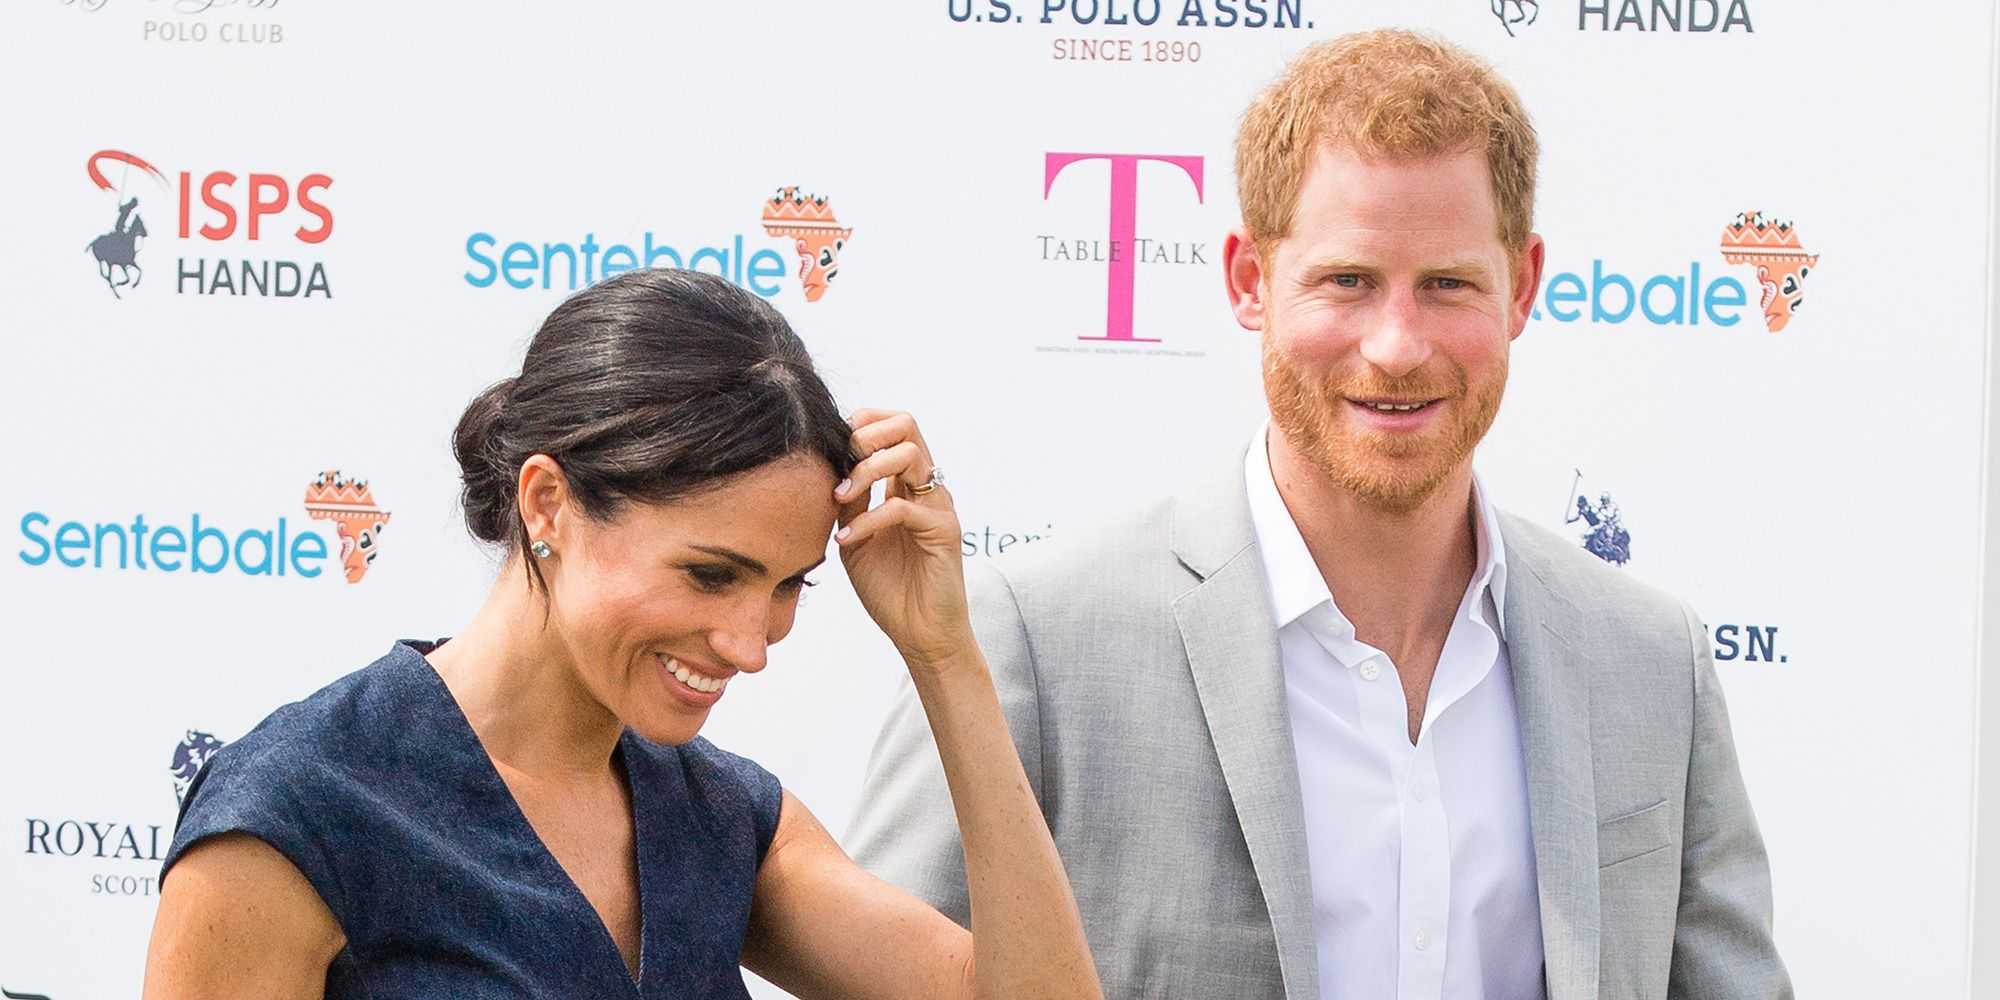 Prince Harry and Meghan Markle just fully snogged at the polo